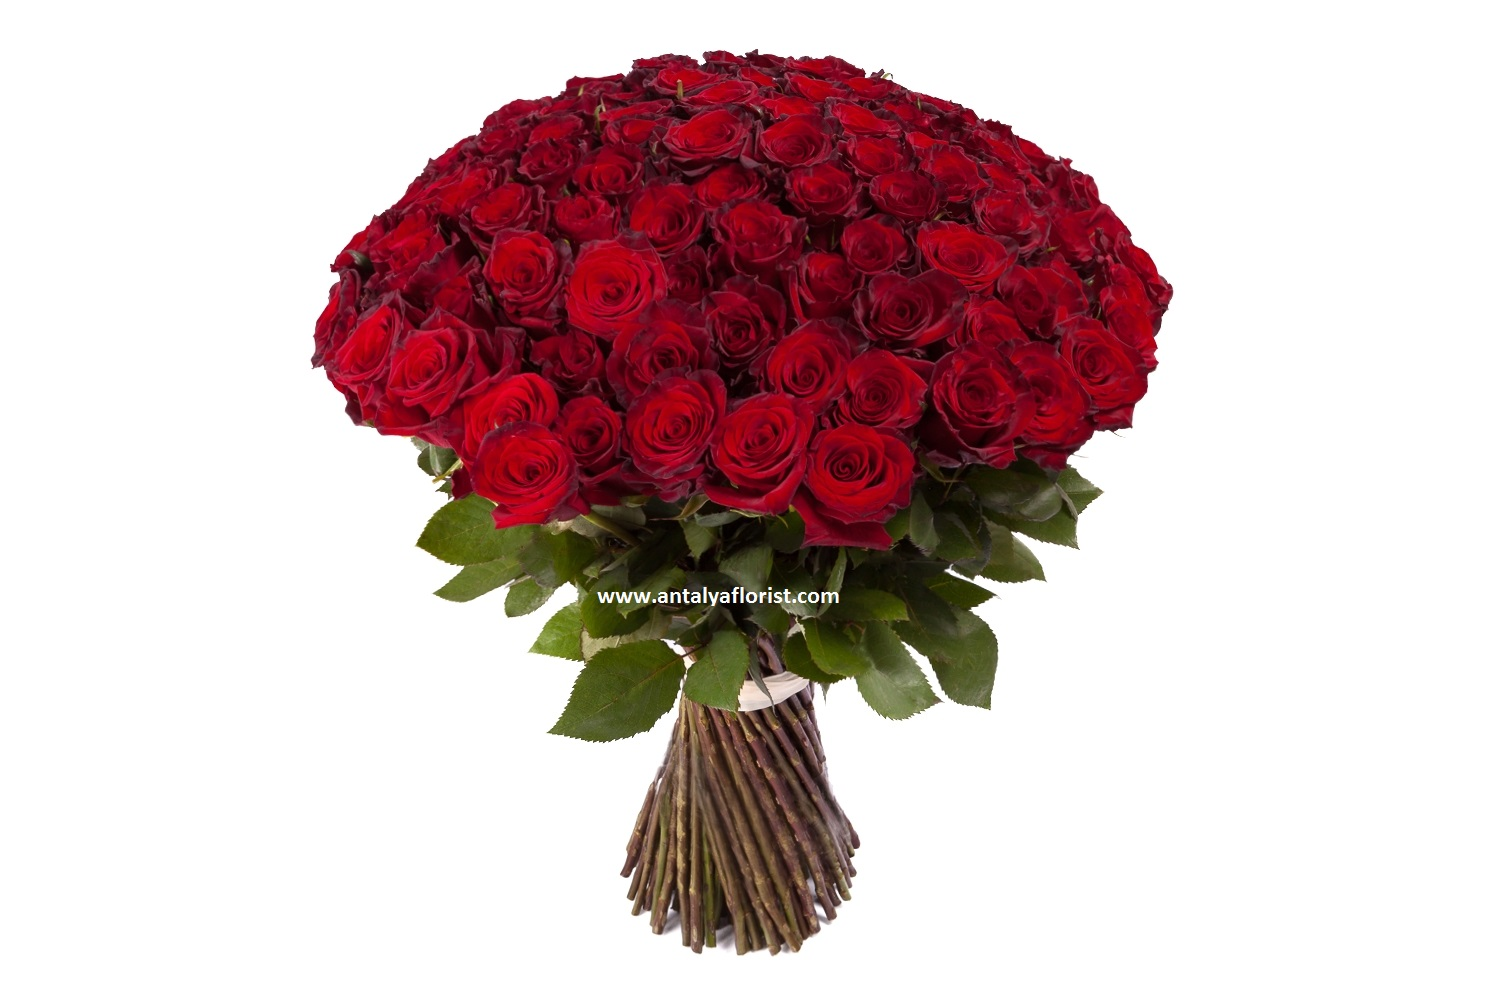 antalya flowers shop 101pc Red Rose 1st Class